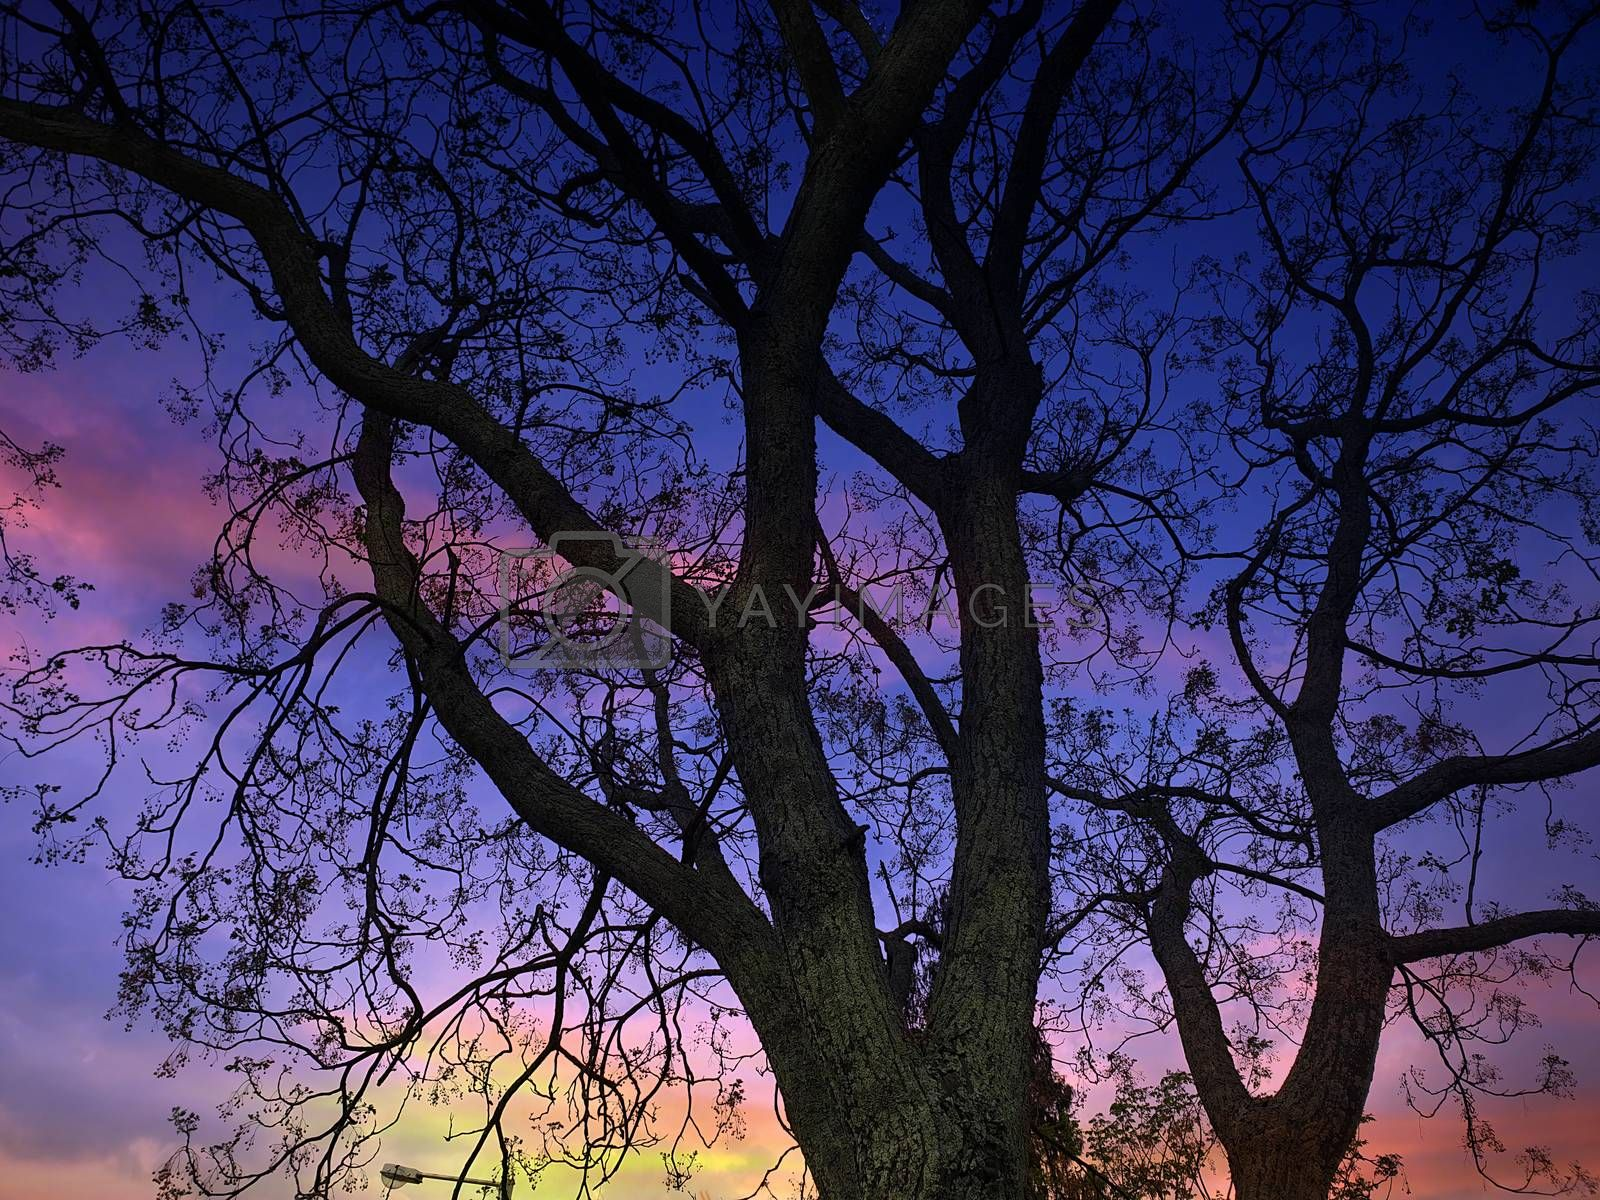 A beautiful tree in autumn against the backdrop of colorful dusky sky.